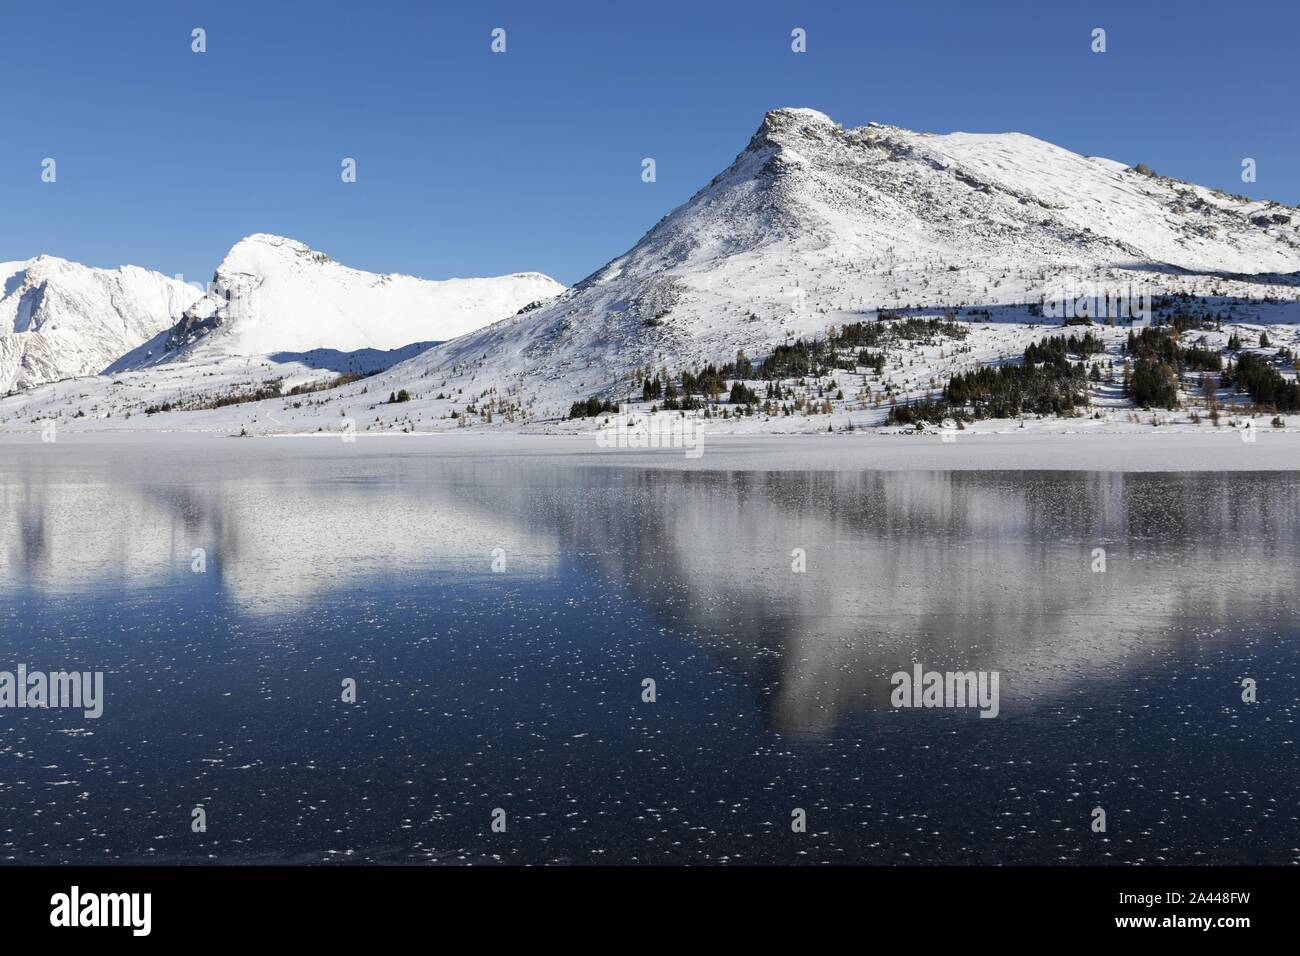 reflection-of-snowy-mountain-peaks-in-fr